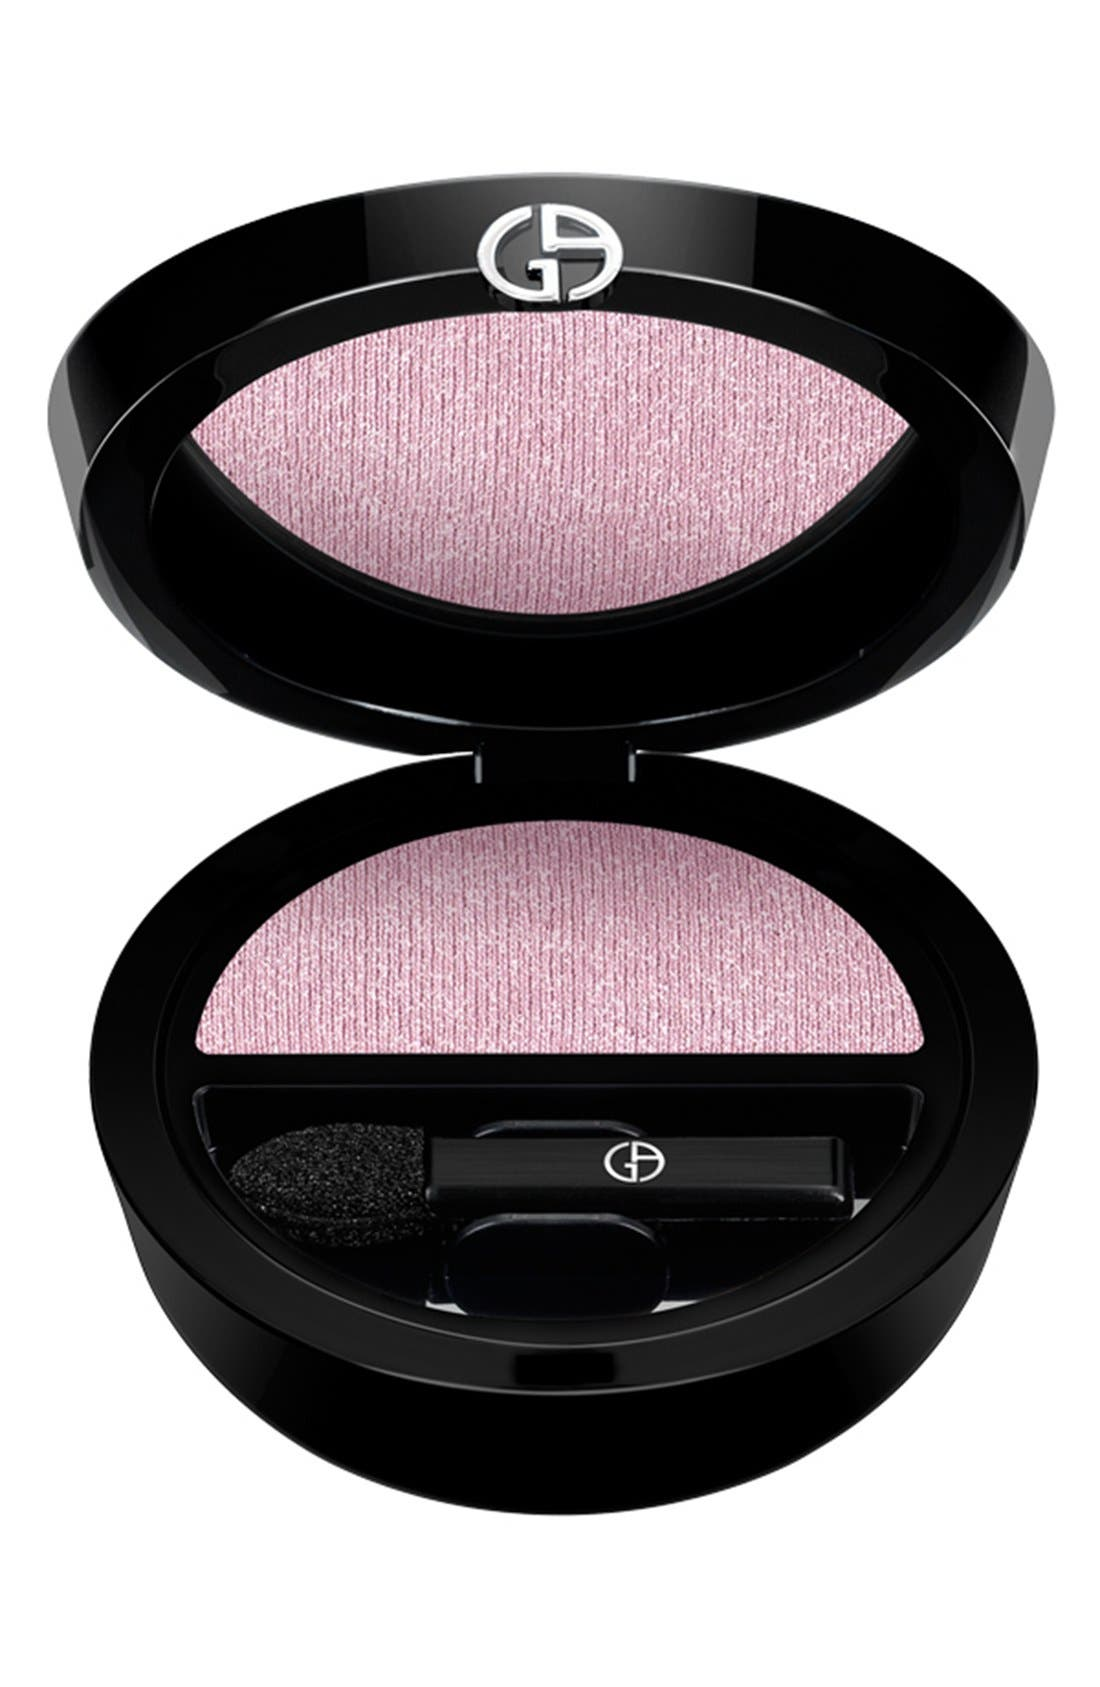 Giorgio Armani 'Eyes to Kill' Eyeshadow